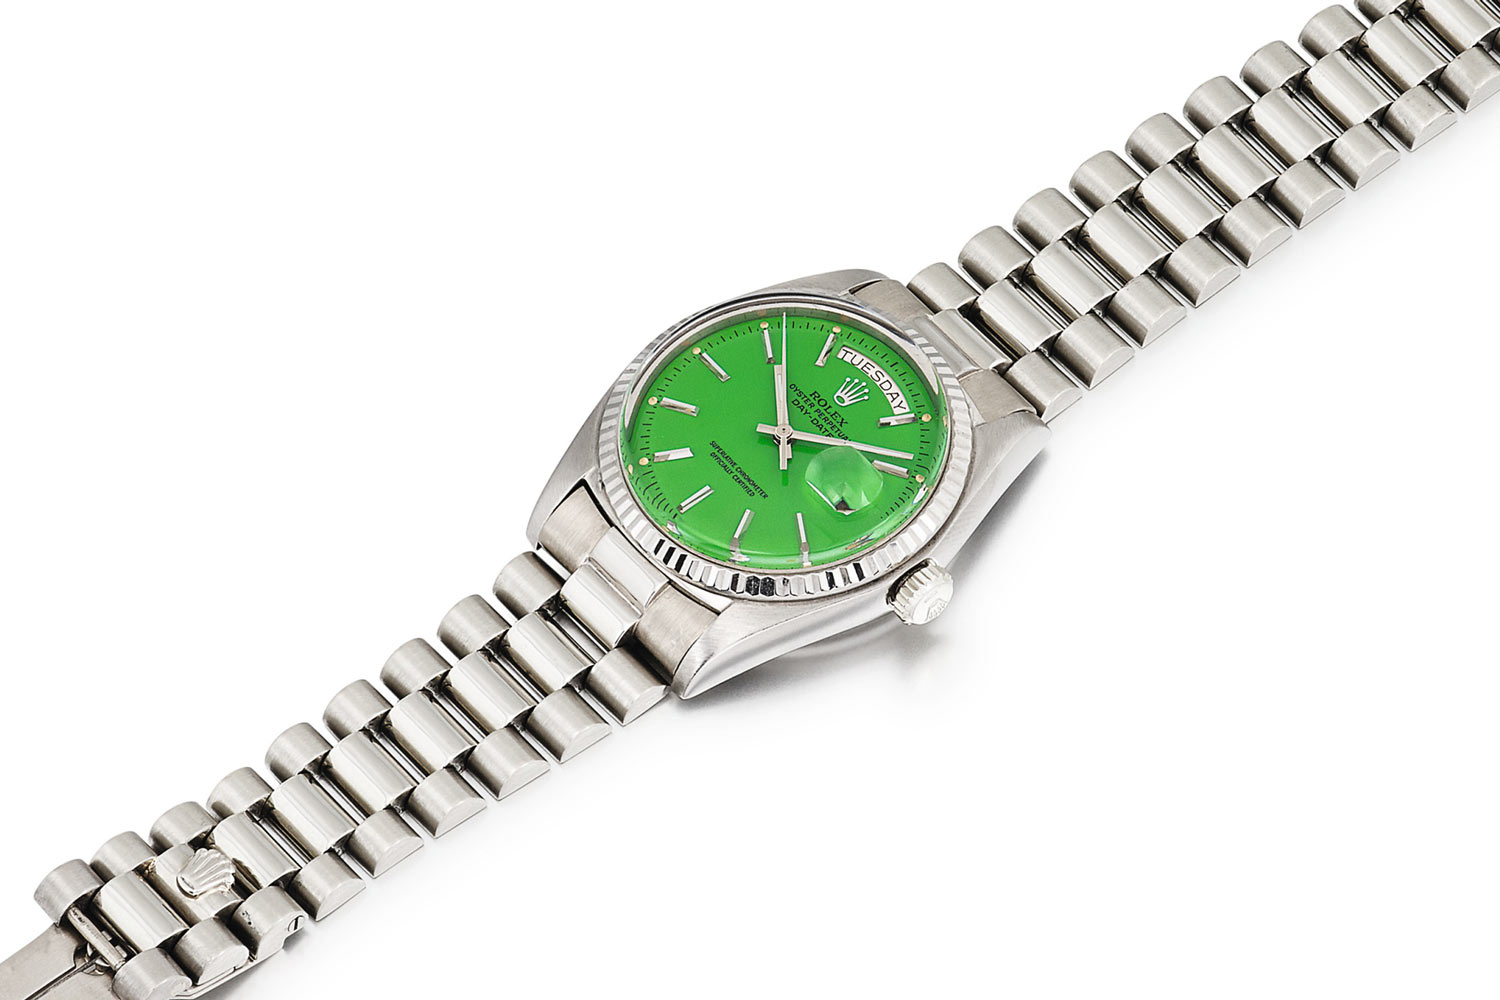 Lot 384: Rolex 'Stella' Day-Date Ref. 1803. White gold wristwatch with day, date and green Stella dial, circa 1974